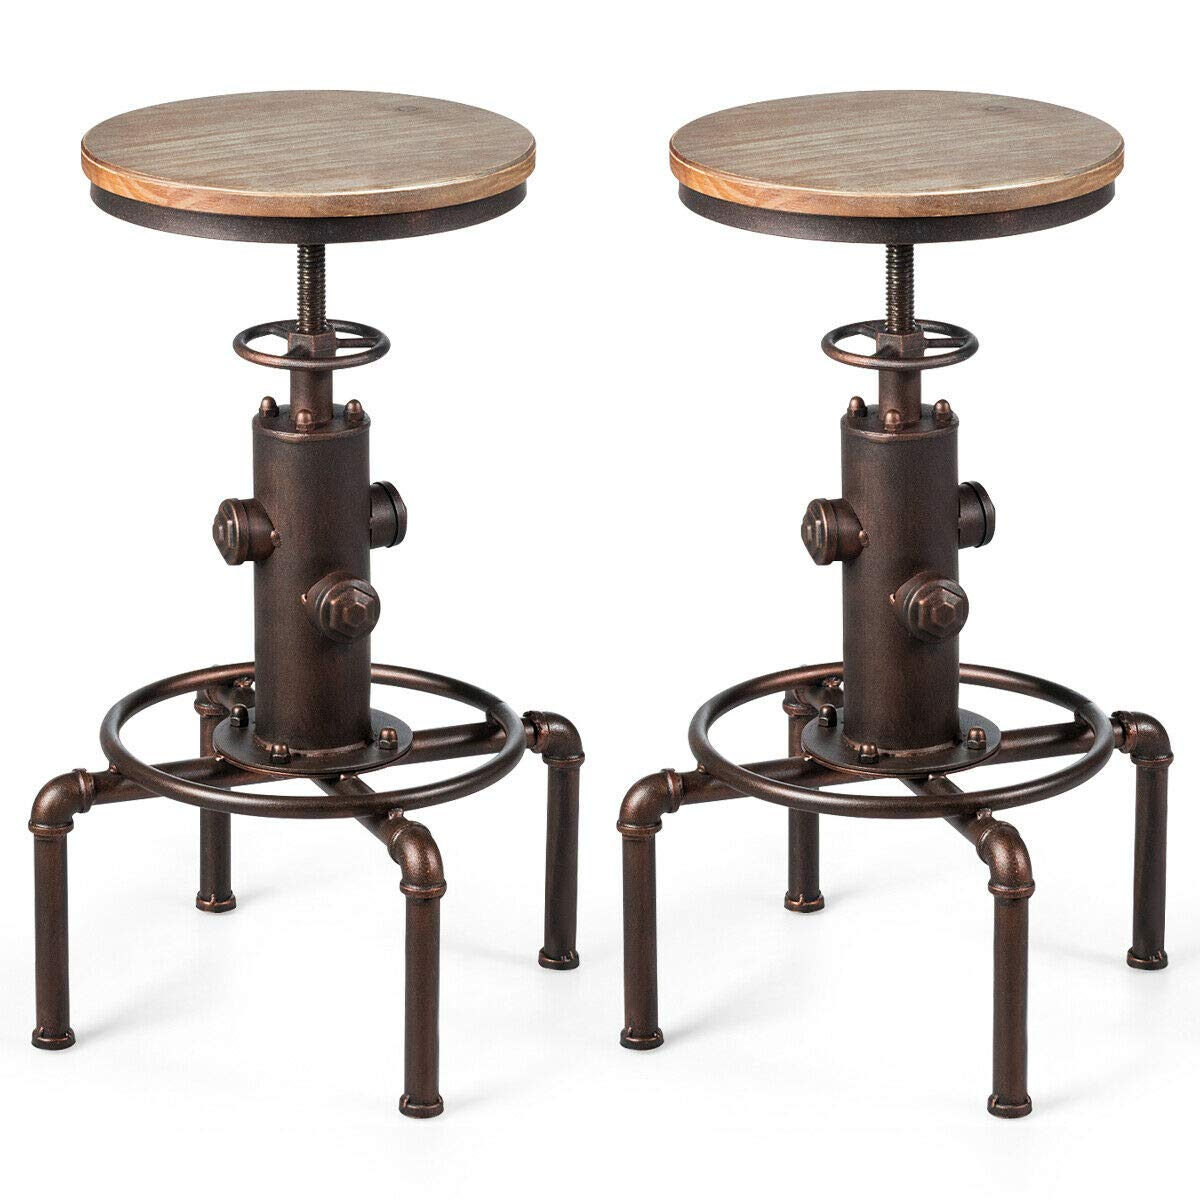 COSTWAY Industrial Bar Stool, Antique Vintage Round Stool Height Adjustable Backless Swivel Counter Furniture Metal, Modern Wooden Barstools, Ideal for Restaurant, Cafe, Pub, Home (Bronzed, 2 Stools) by COSTWAY